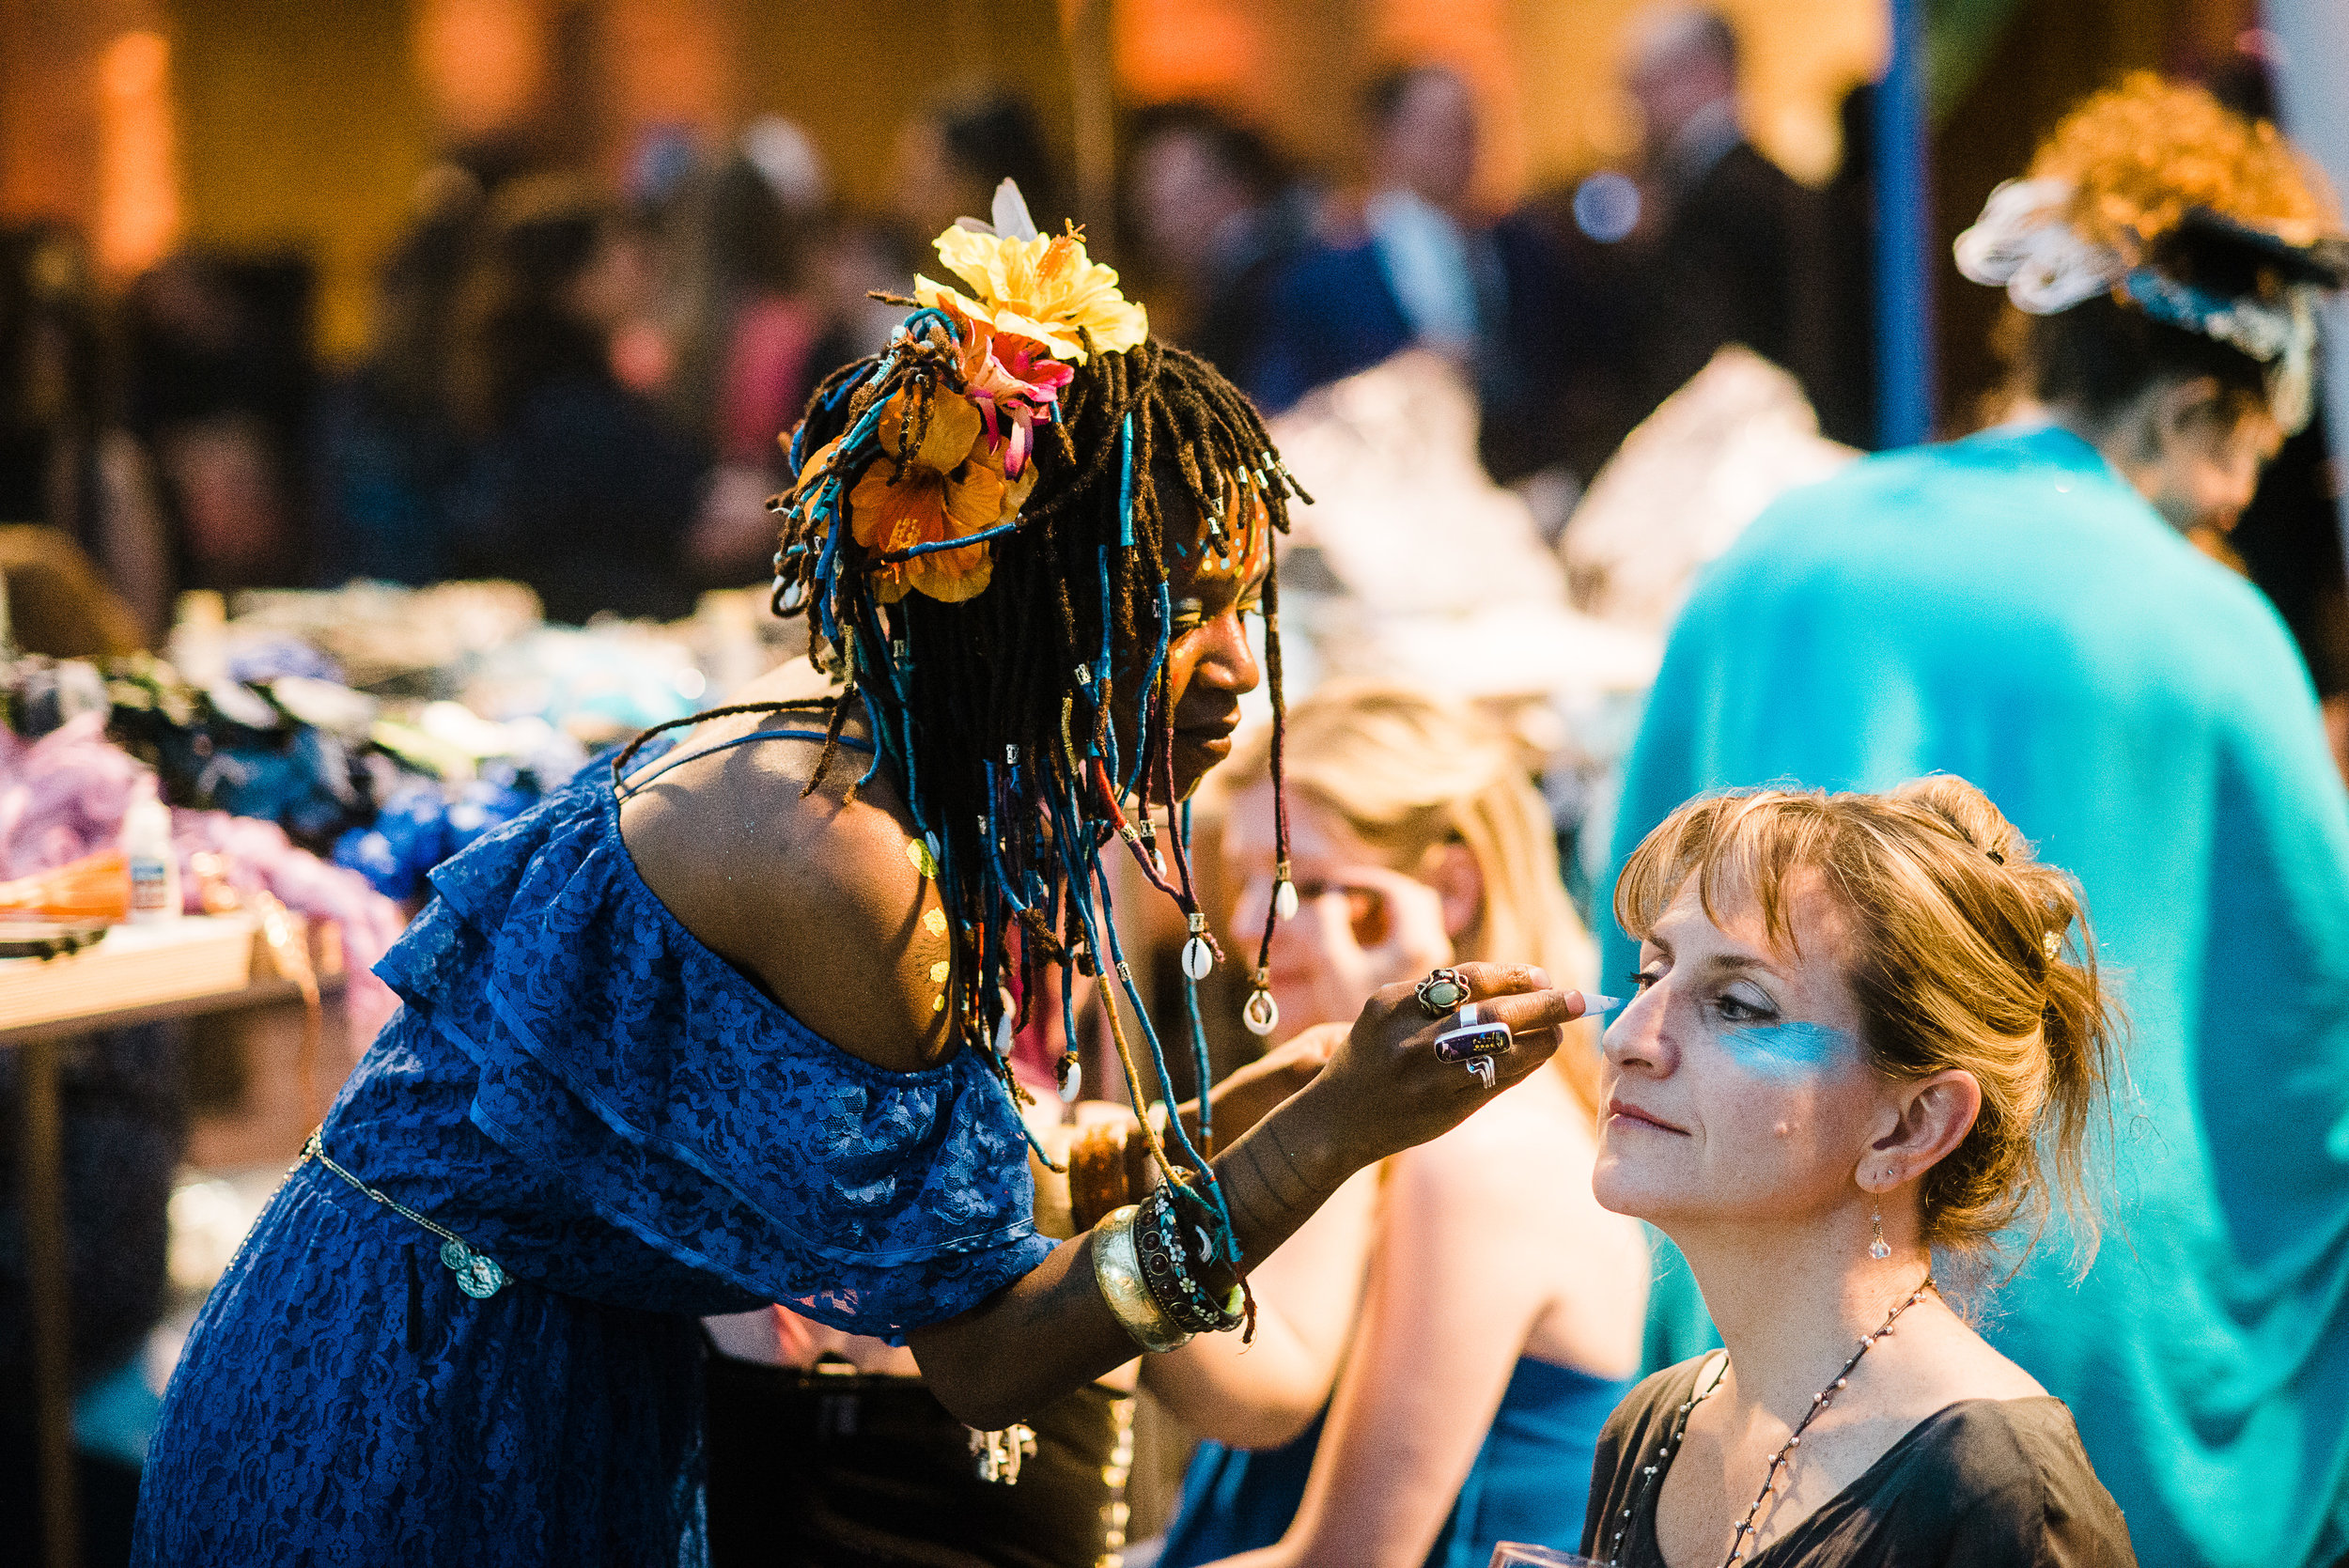 The Brooklyn Artists Ball at Brooklyn Museum 2017.The Brooklyn Artists Ball at Brooklyn Museum 2017. A pop-up of artist Swoon's Pearly's Beauty Shop;